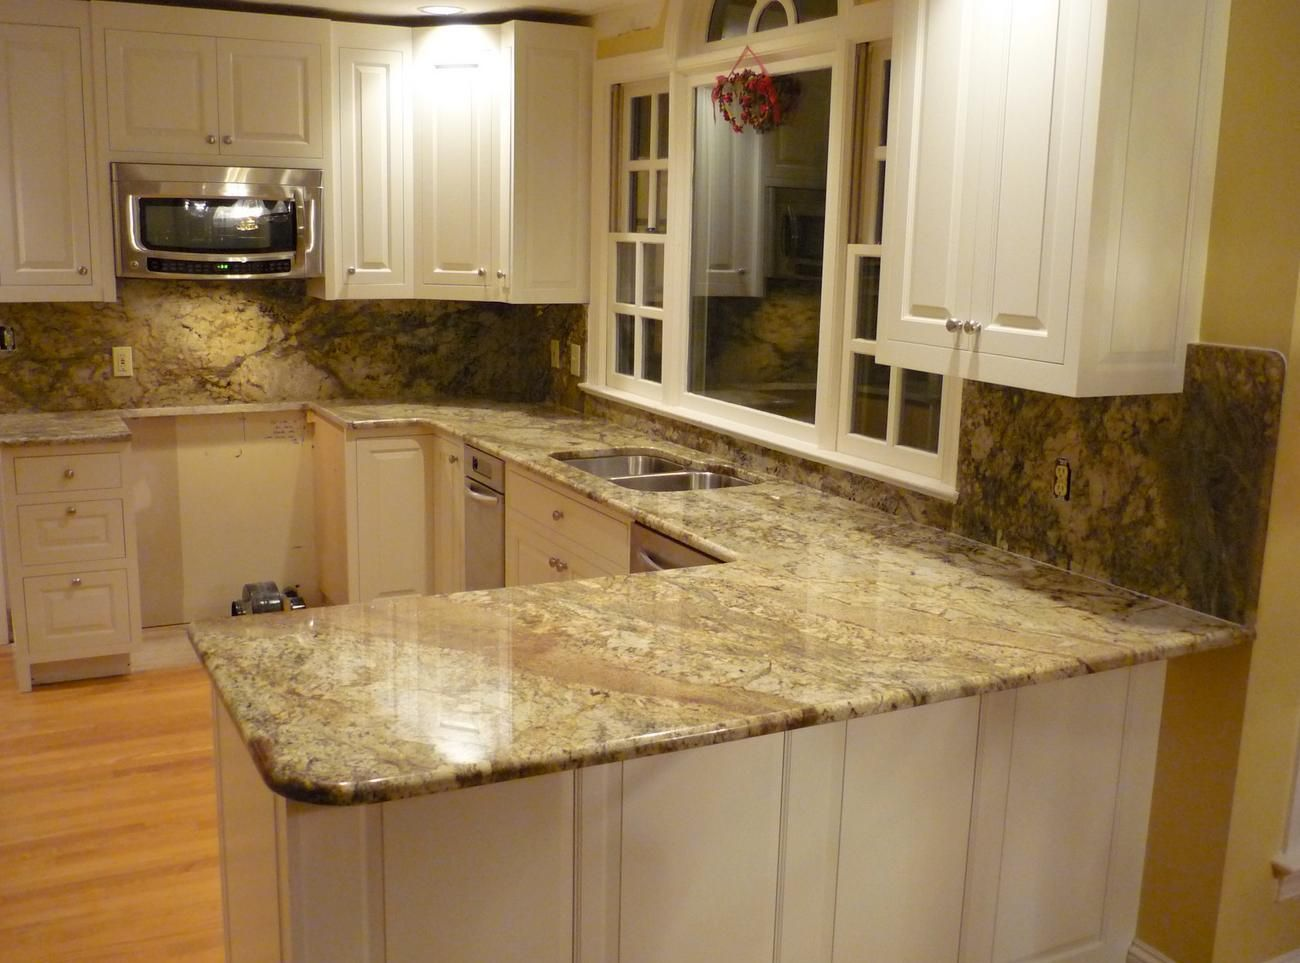 kitchen best guide materials countertops how popular concrete diy to and a countertop spaces rooms for